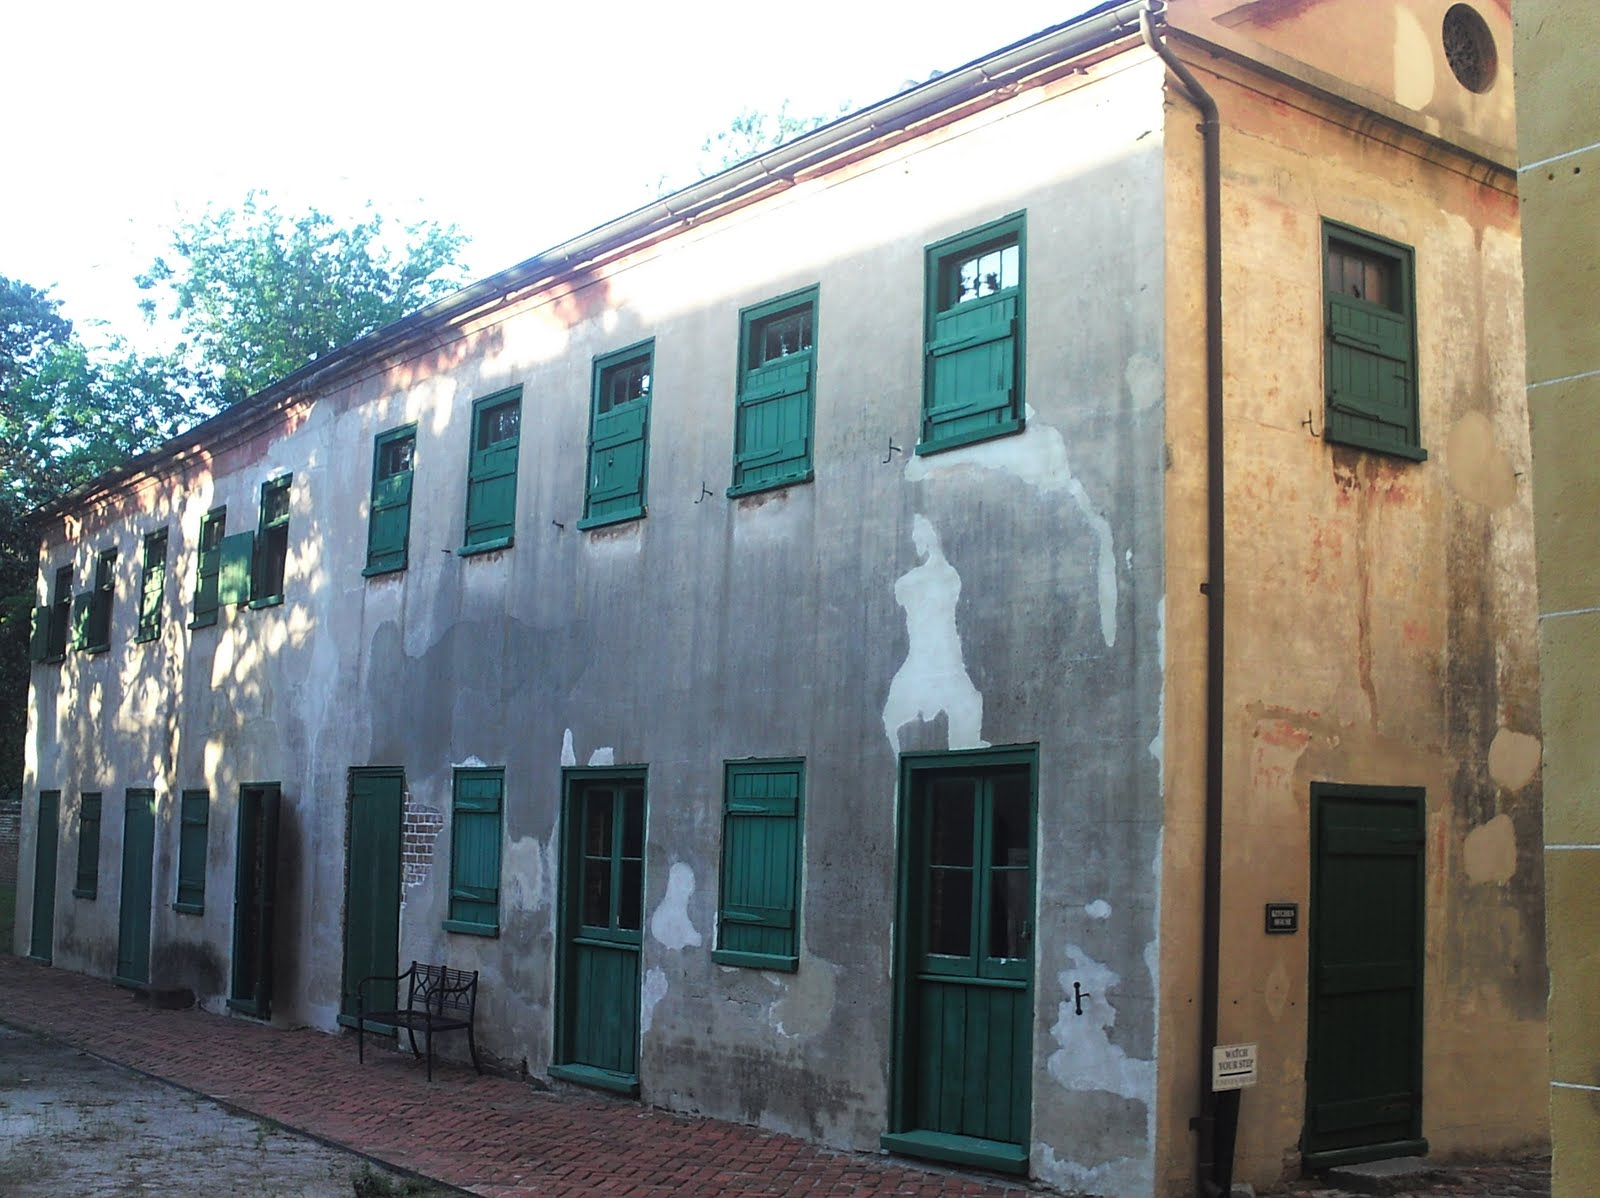 Photo of the old slave quarters courtesy of aboutourfreedom.com